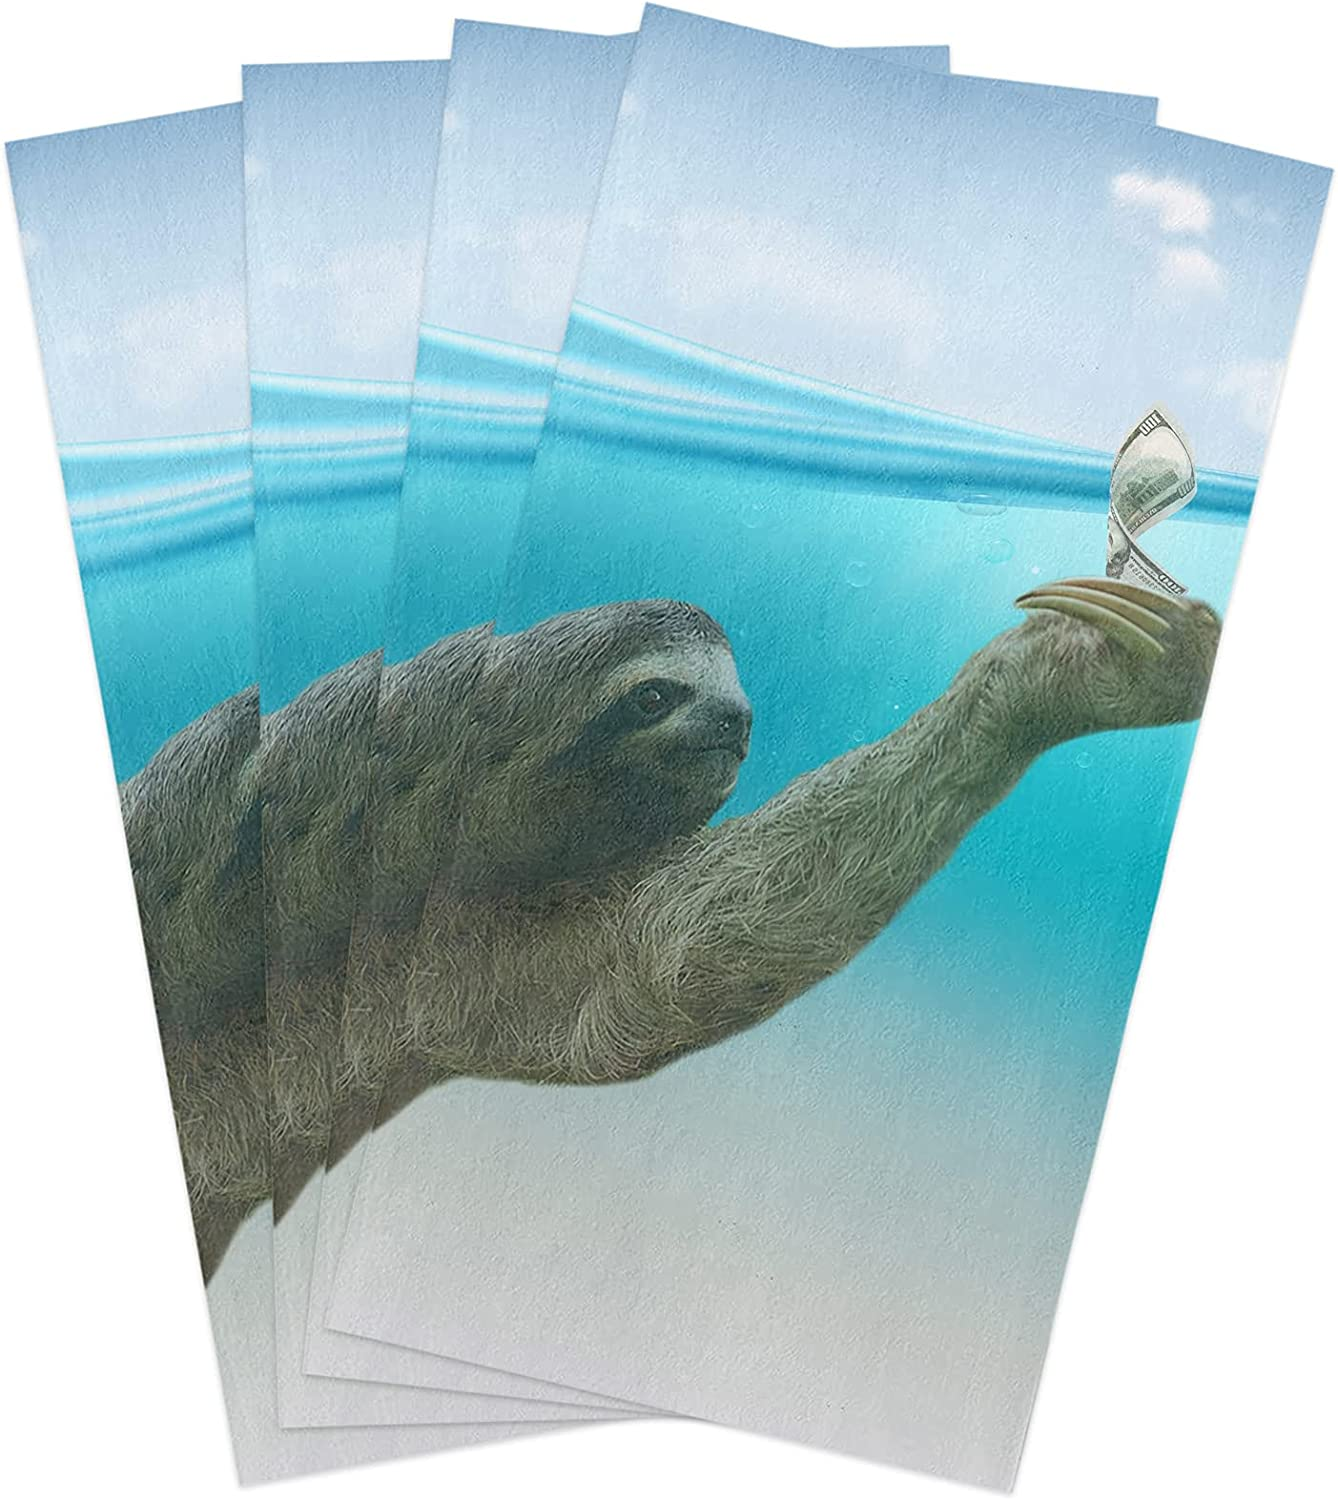 Kitchen Towels Set Sloth in Super special price Max 60% OFF The Sea Towel Ocean Dish Animal Orig